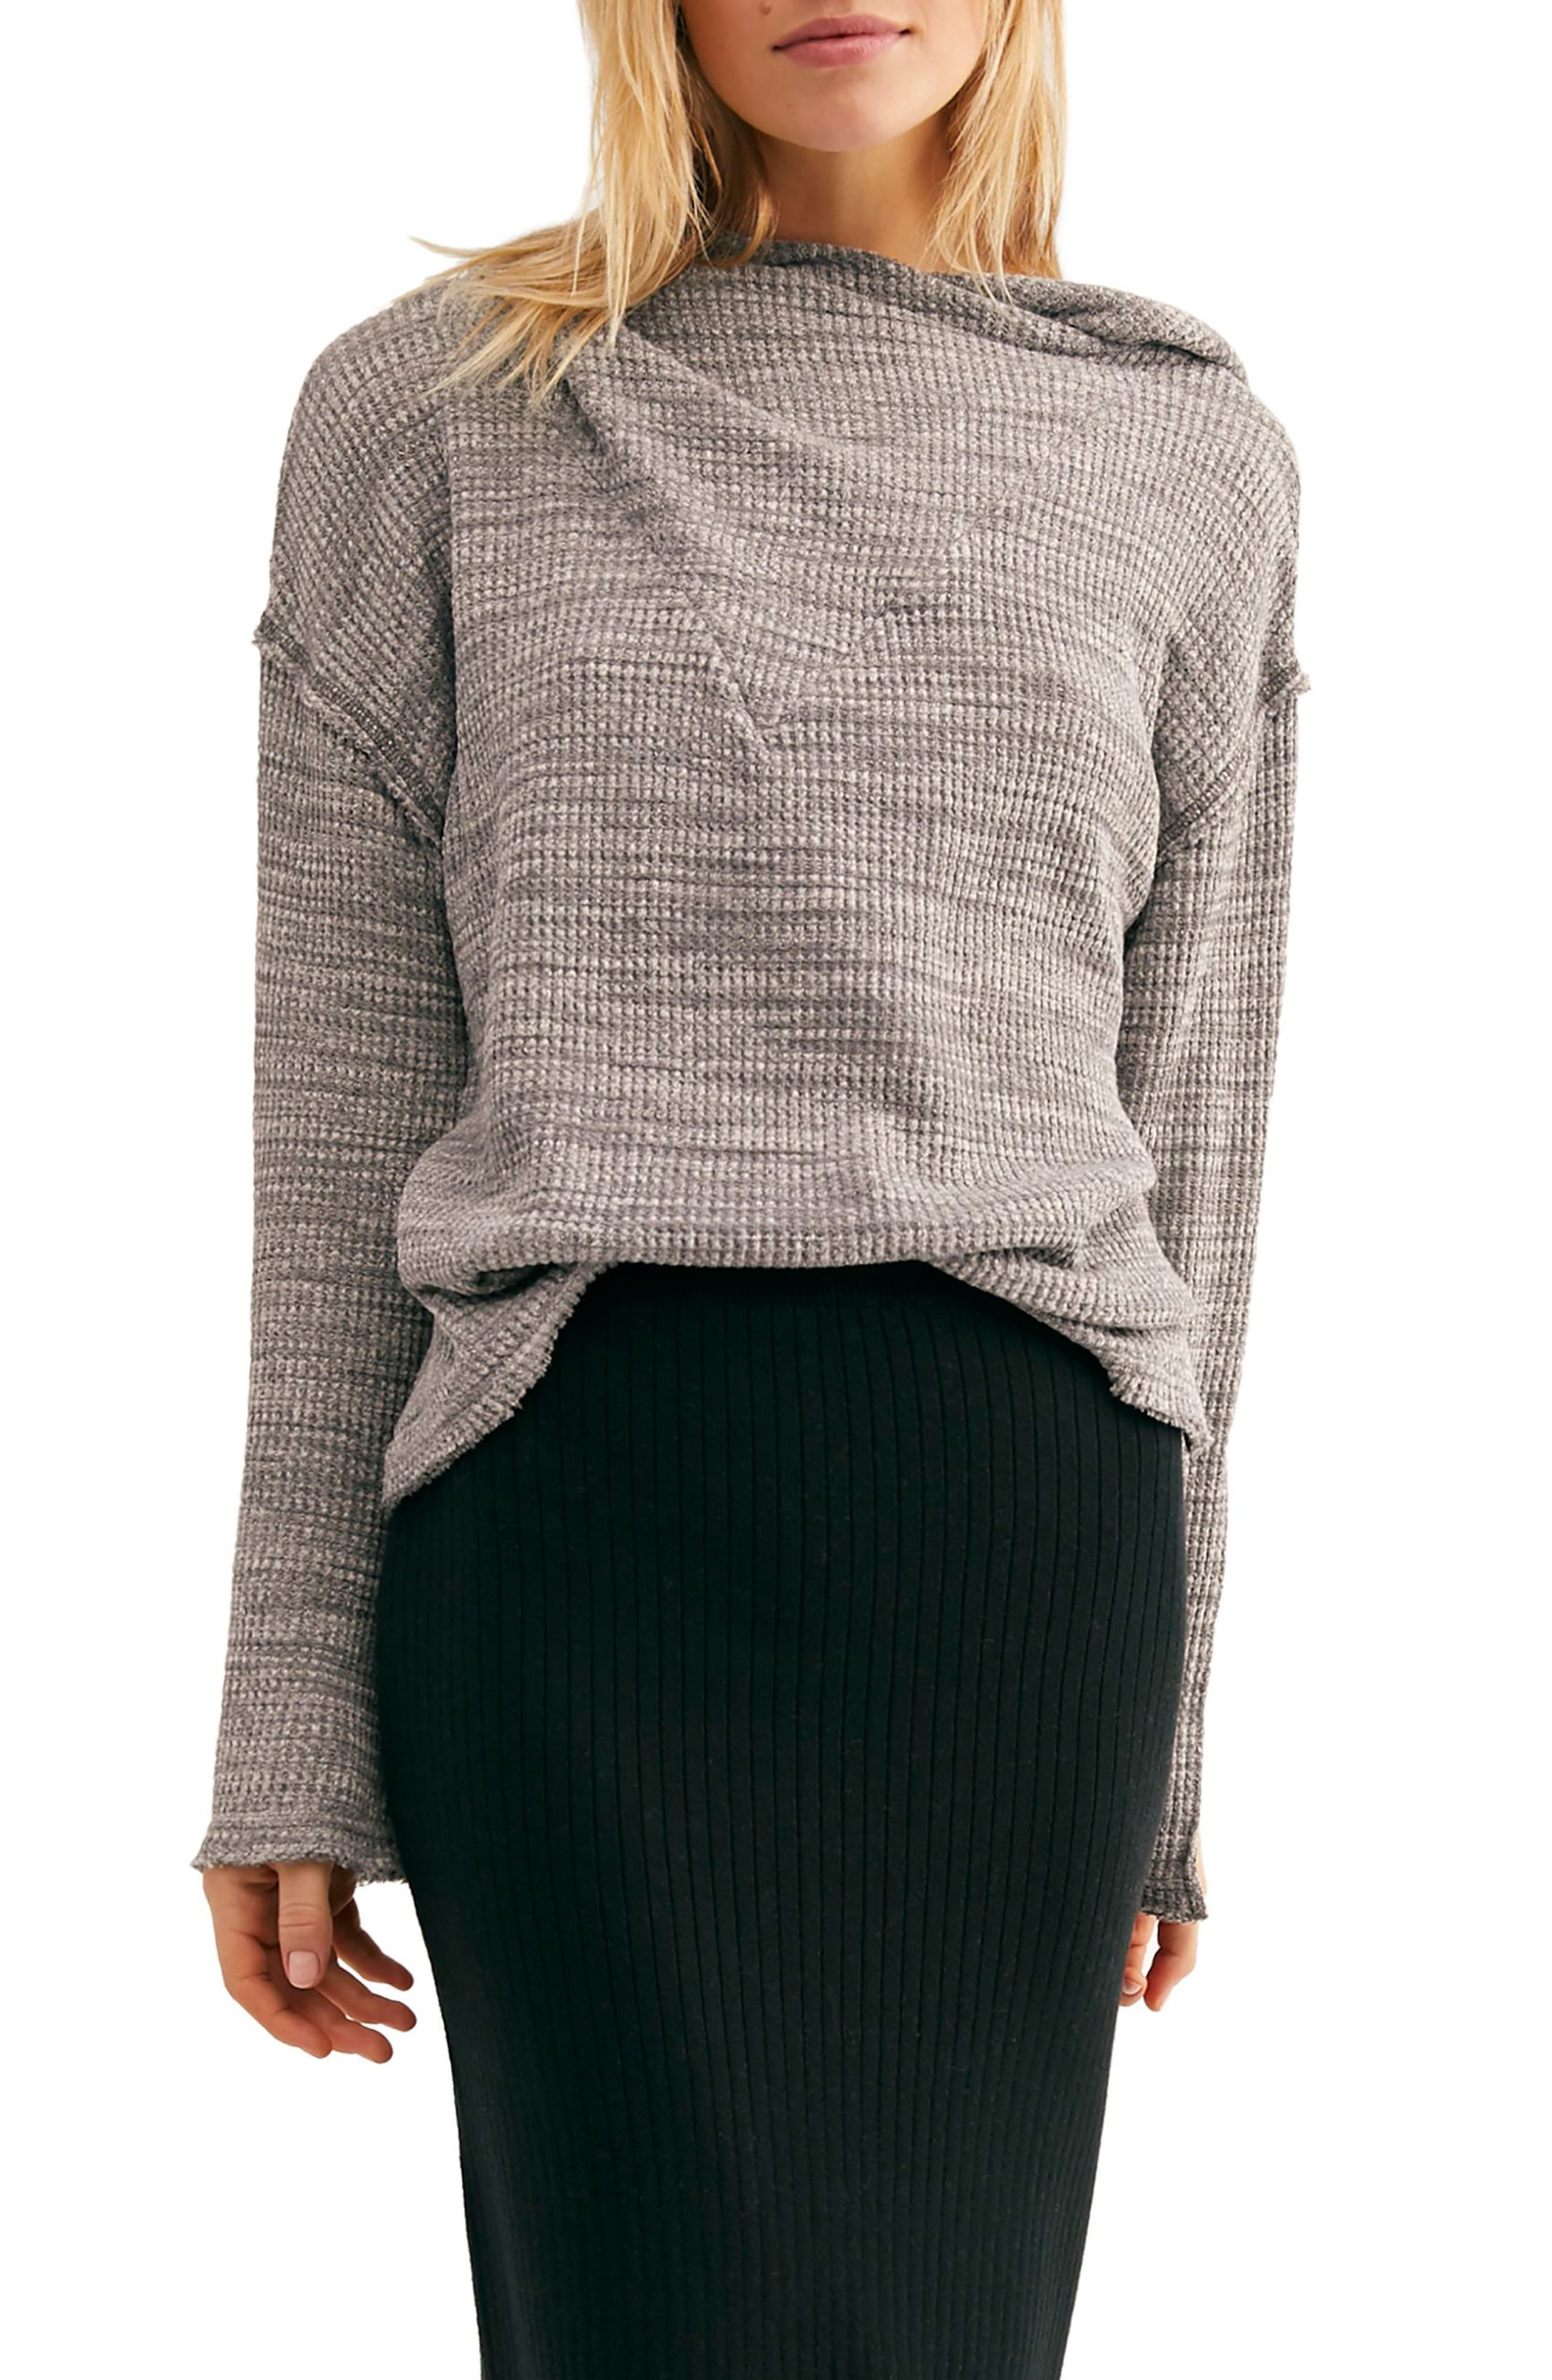 FREE PEOPLE Endless Summer by Free People Hooded Knit Top, Main, color, GREY